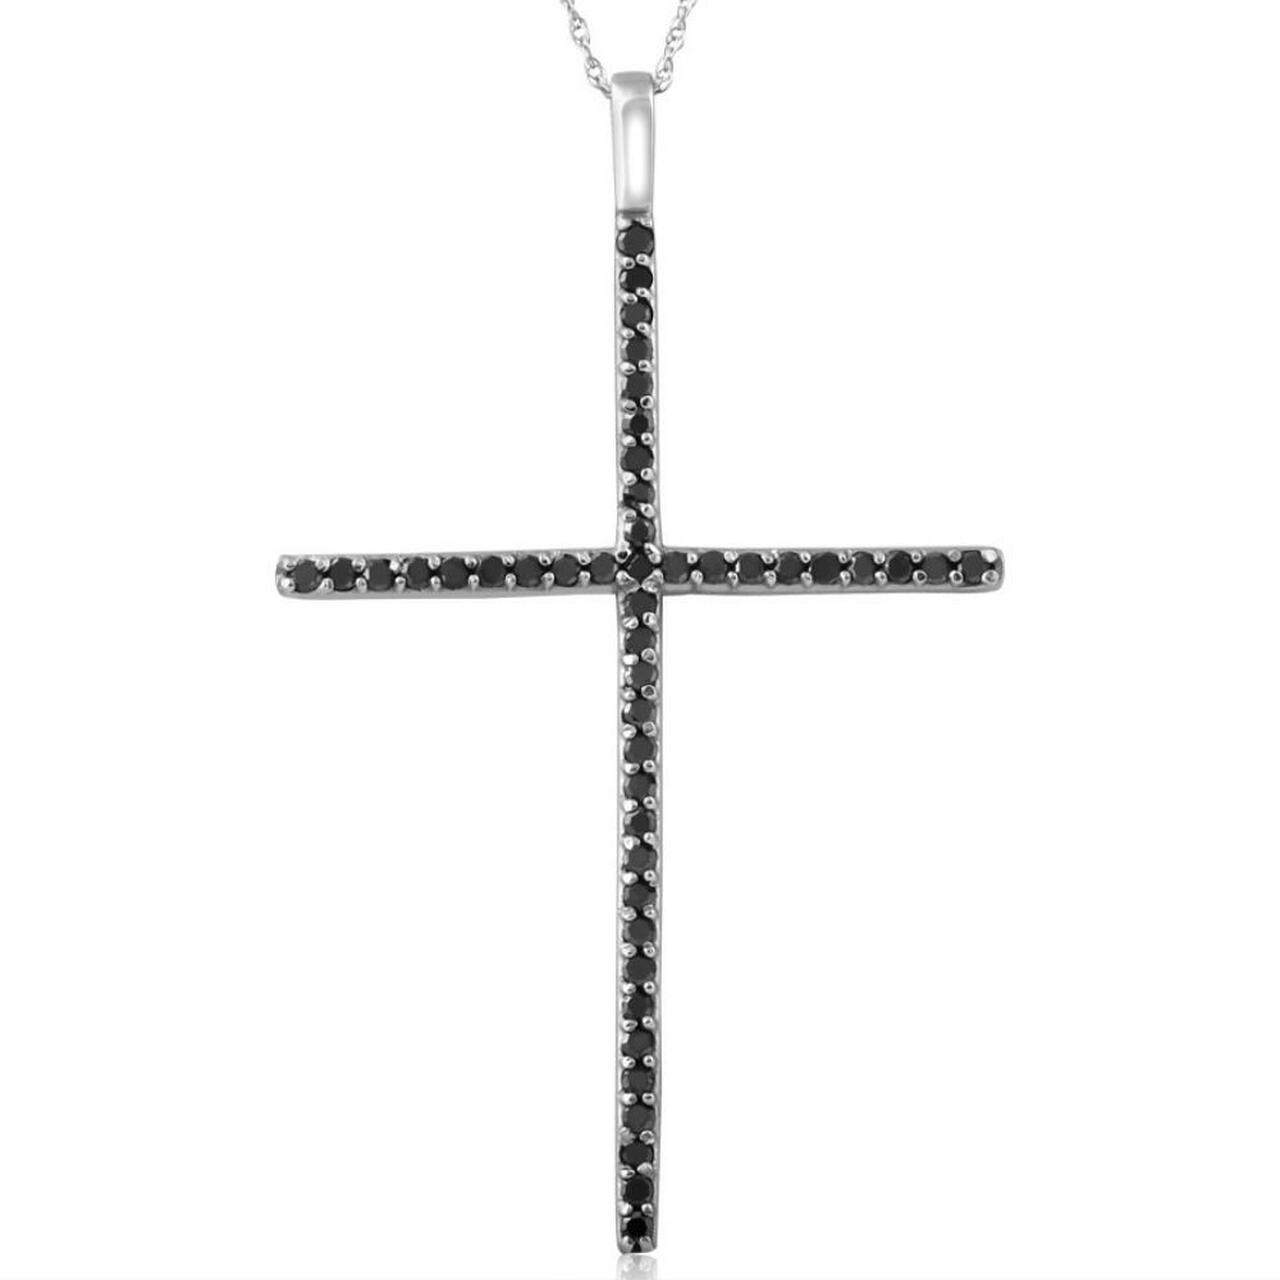 White Gold 1 2ct Black Diamond Cross Pendant Necklace f0ca5fd87776